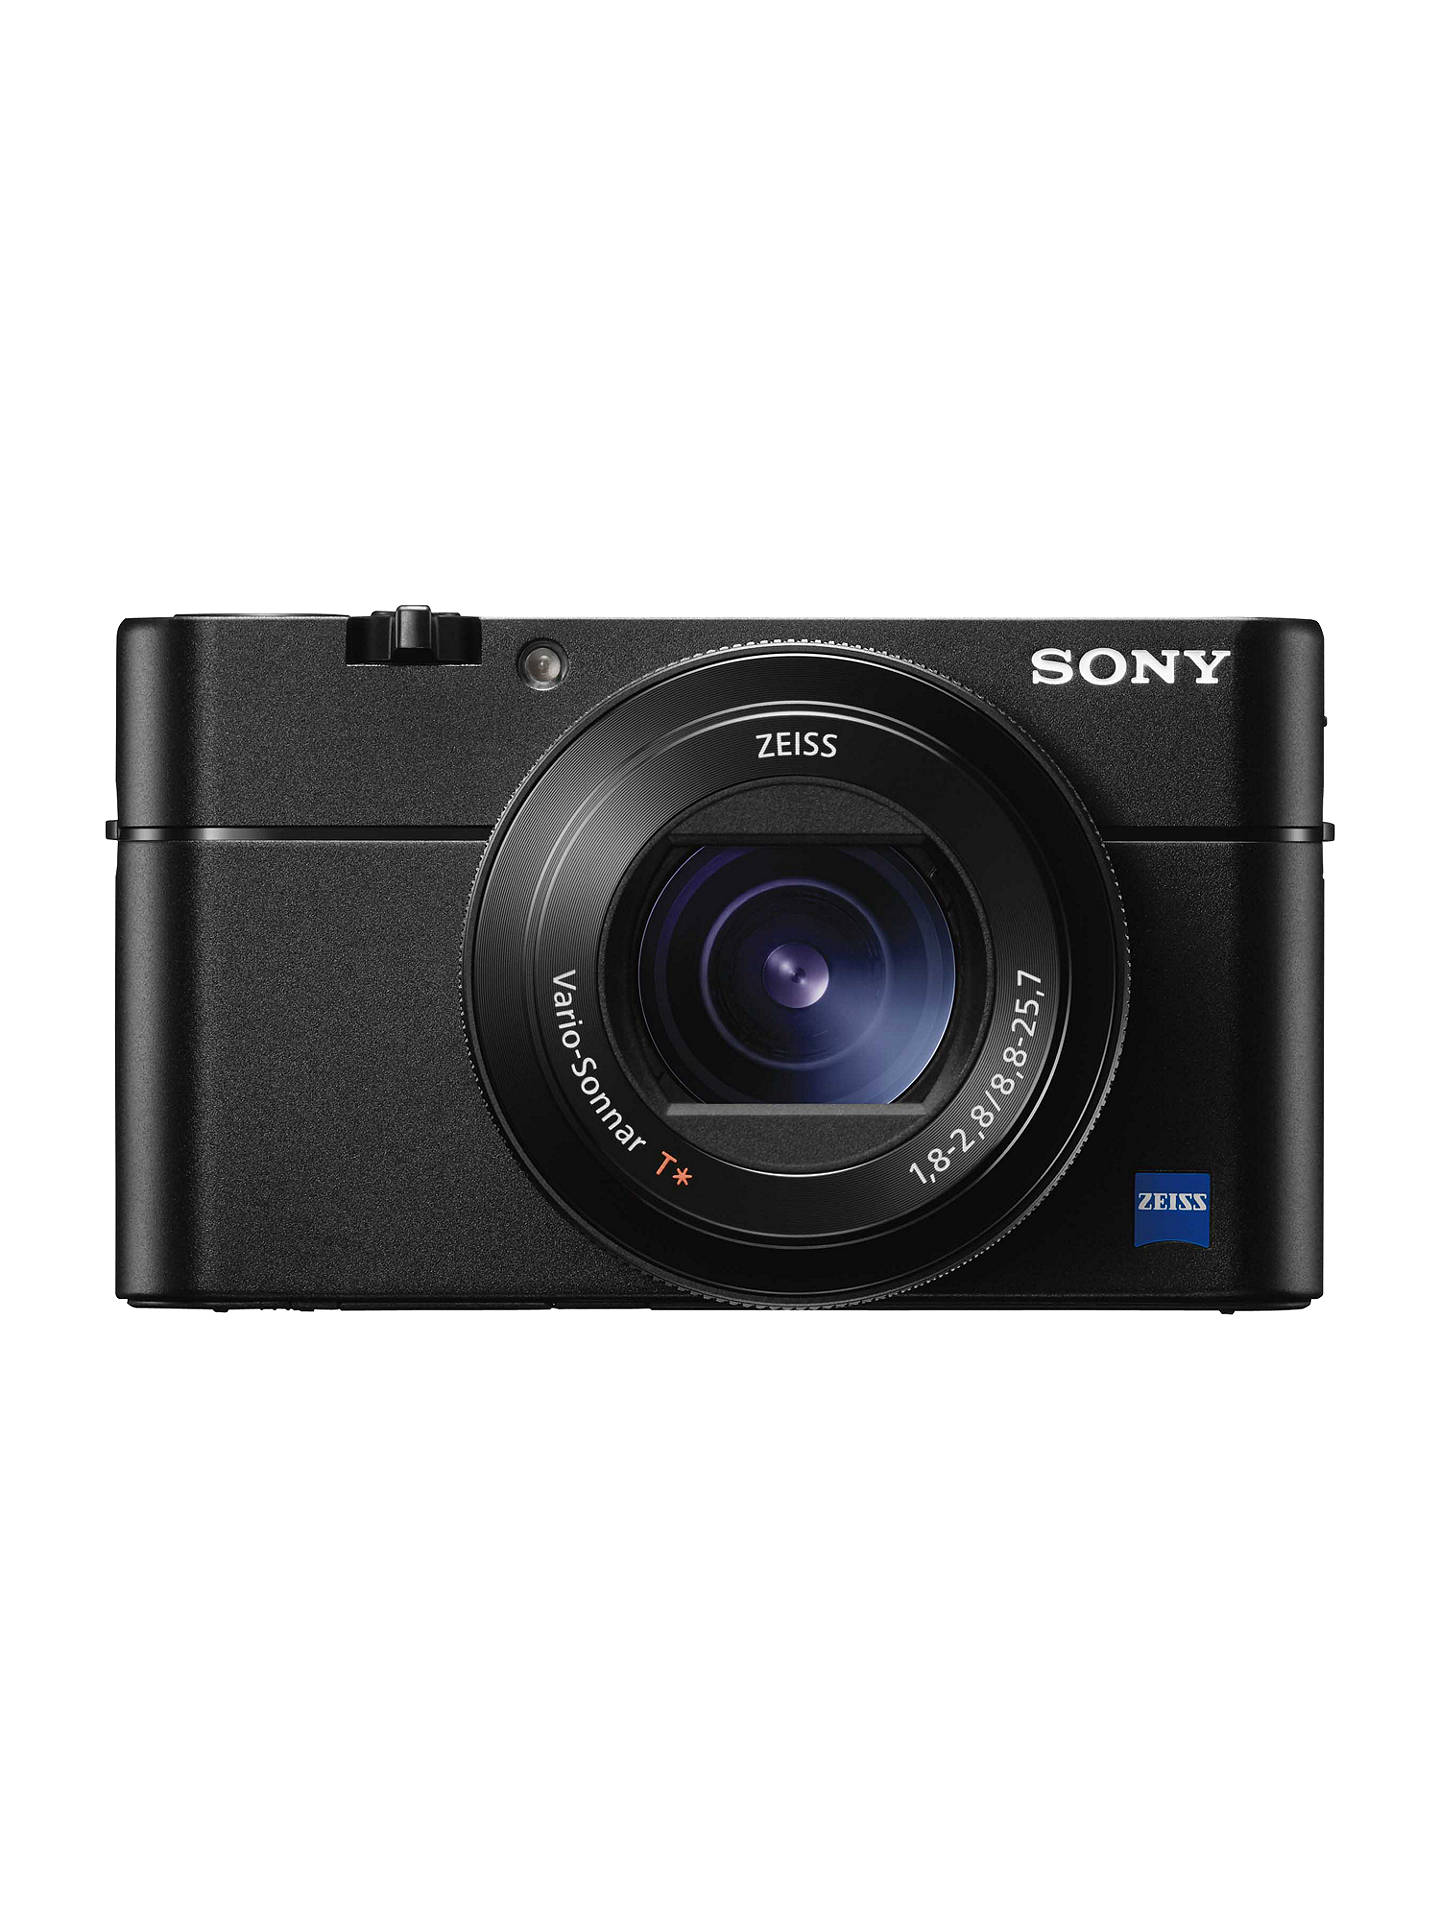 "BuySony Cyber-shot DSC-RX100 V Camera, 4K, 20.1MP, 2.9x Optical Zoom, Wi-Fi, NFC, OLED EVF, 3"" Tiltable Screen Online at johnlewis.com"